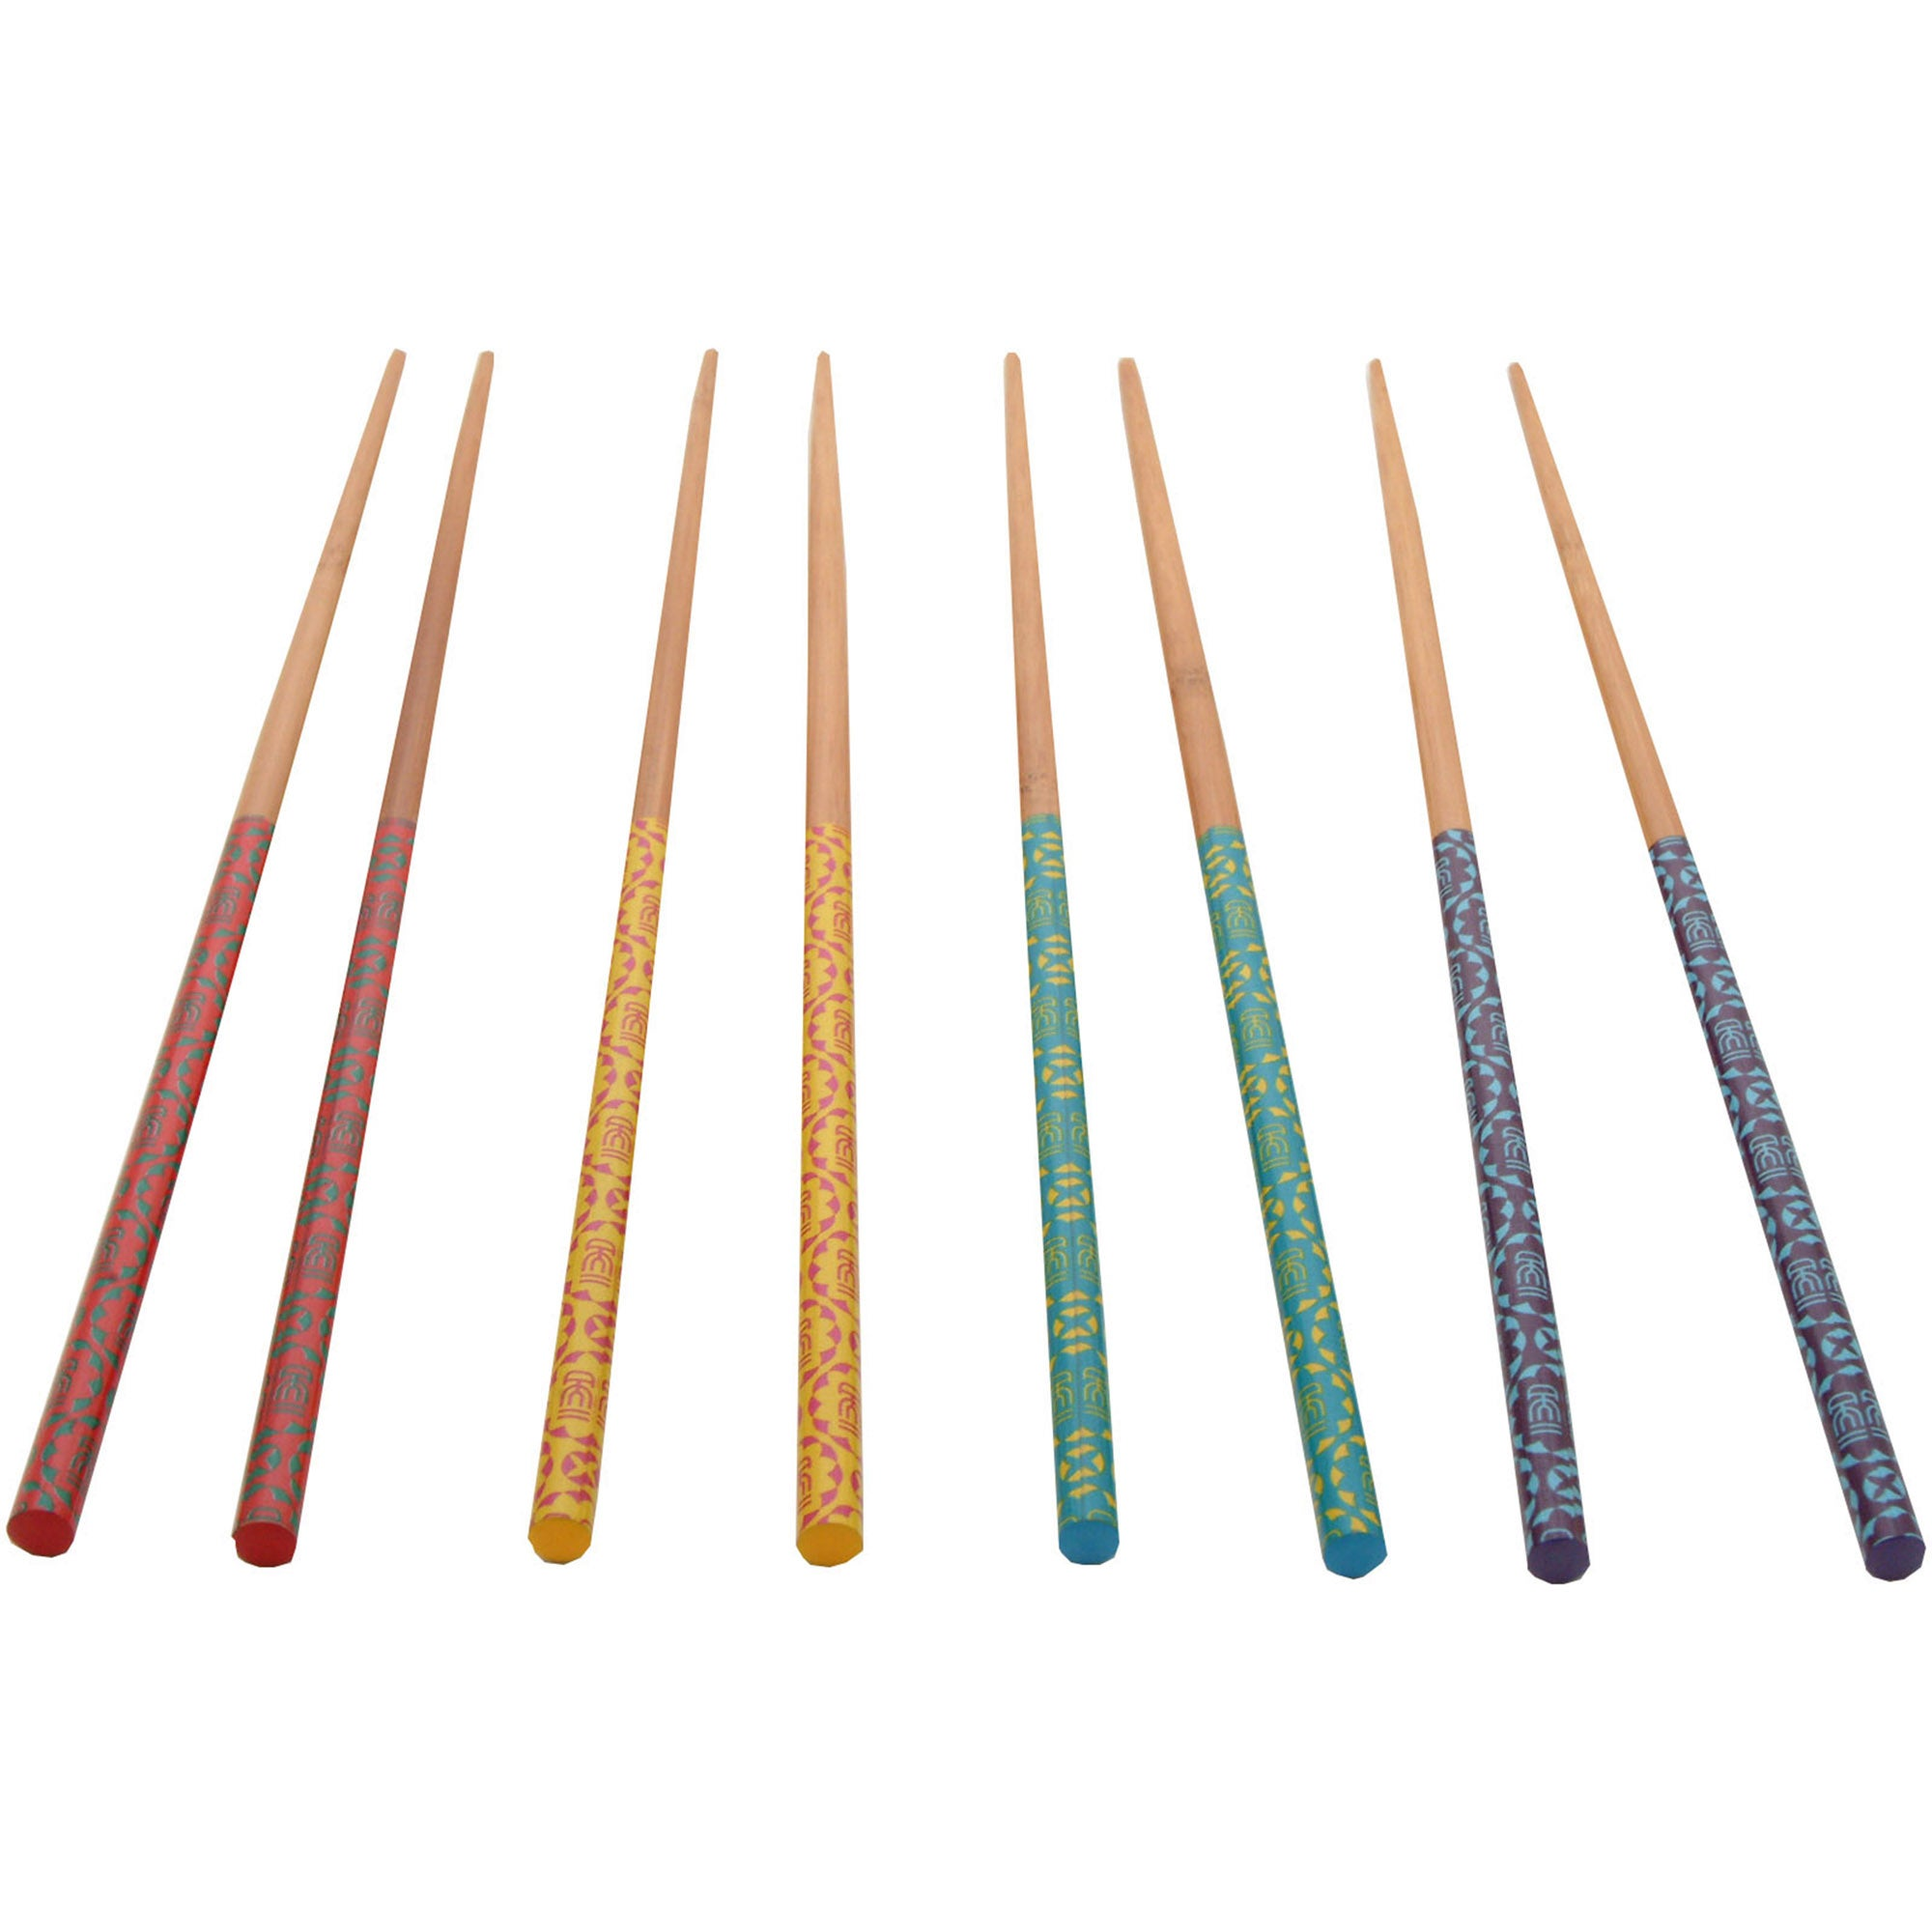 Ching He Huang Collection Pack of 4 Bamboo Chopsticks